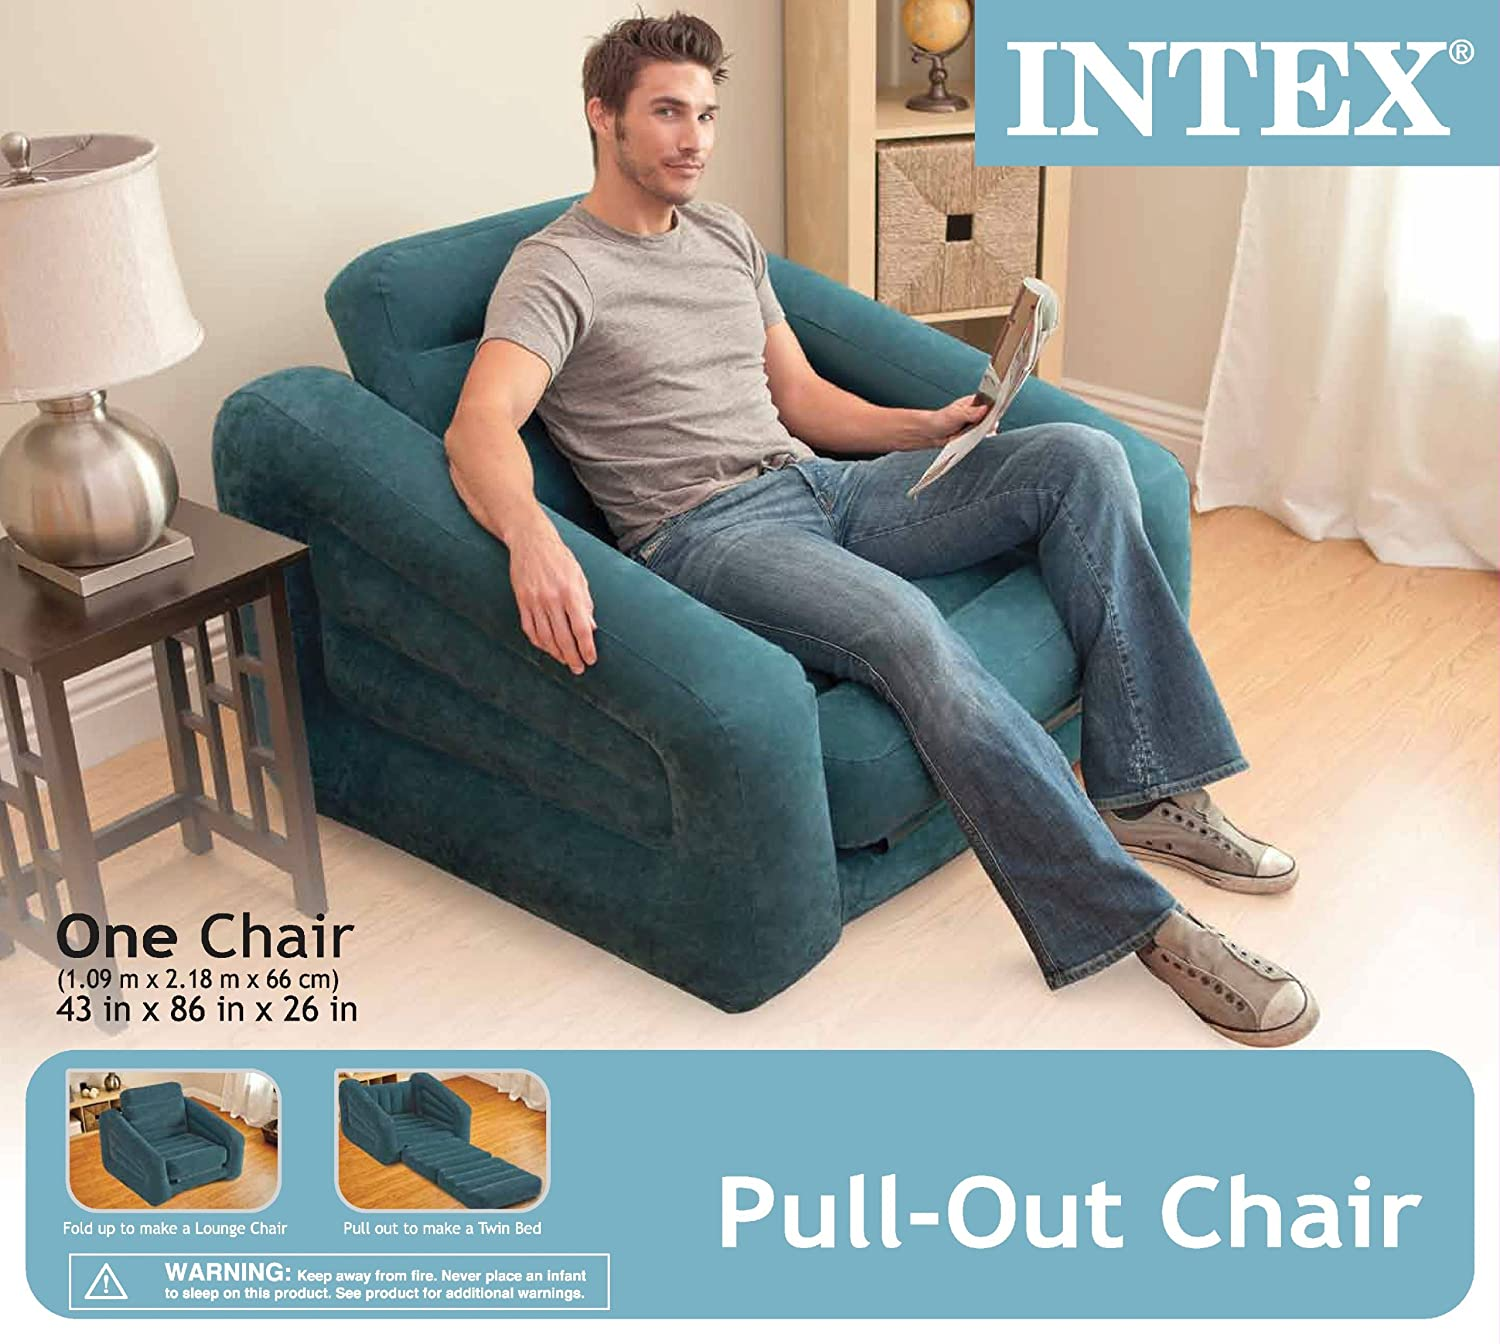 "Amazon Intex Pull out Chair Inflatable Bed 42"" X 87"" X 26"